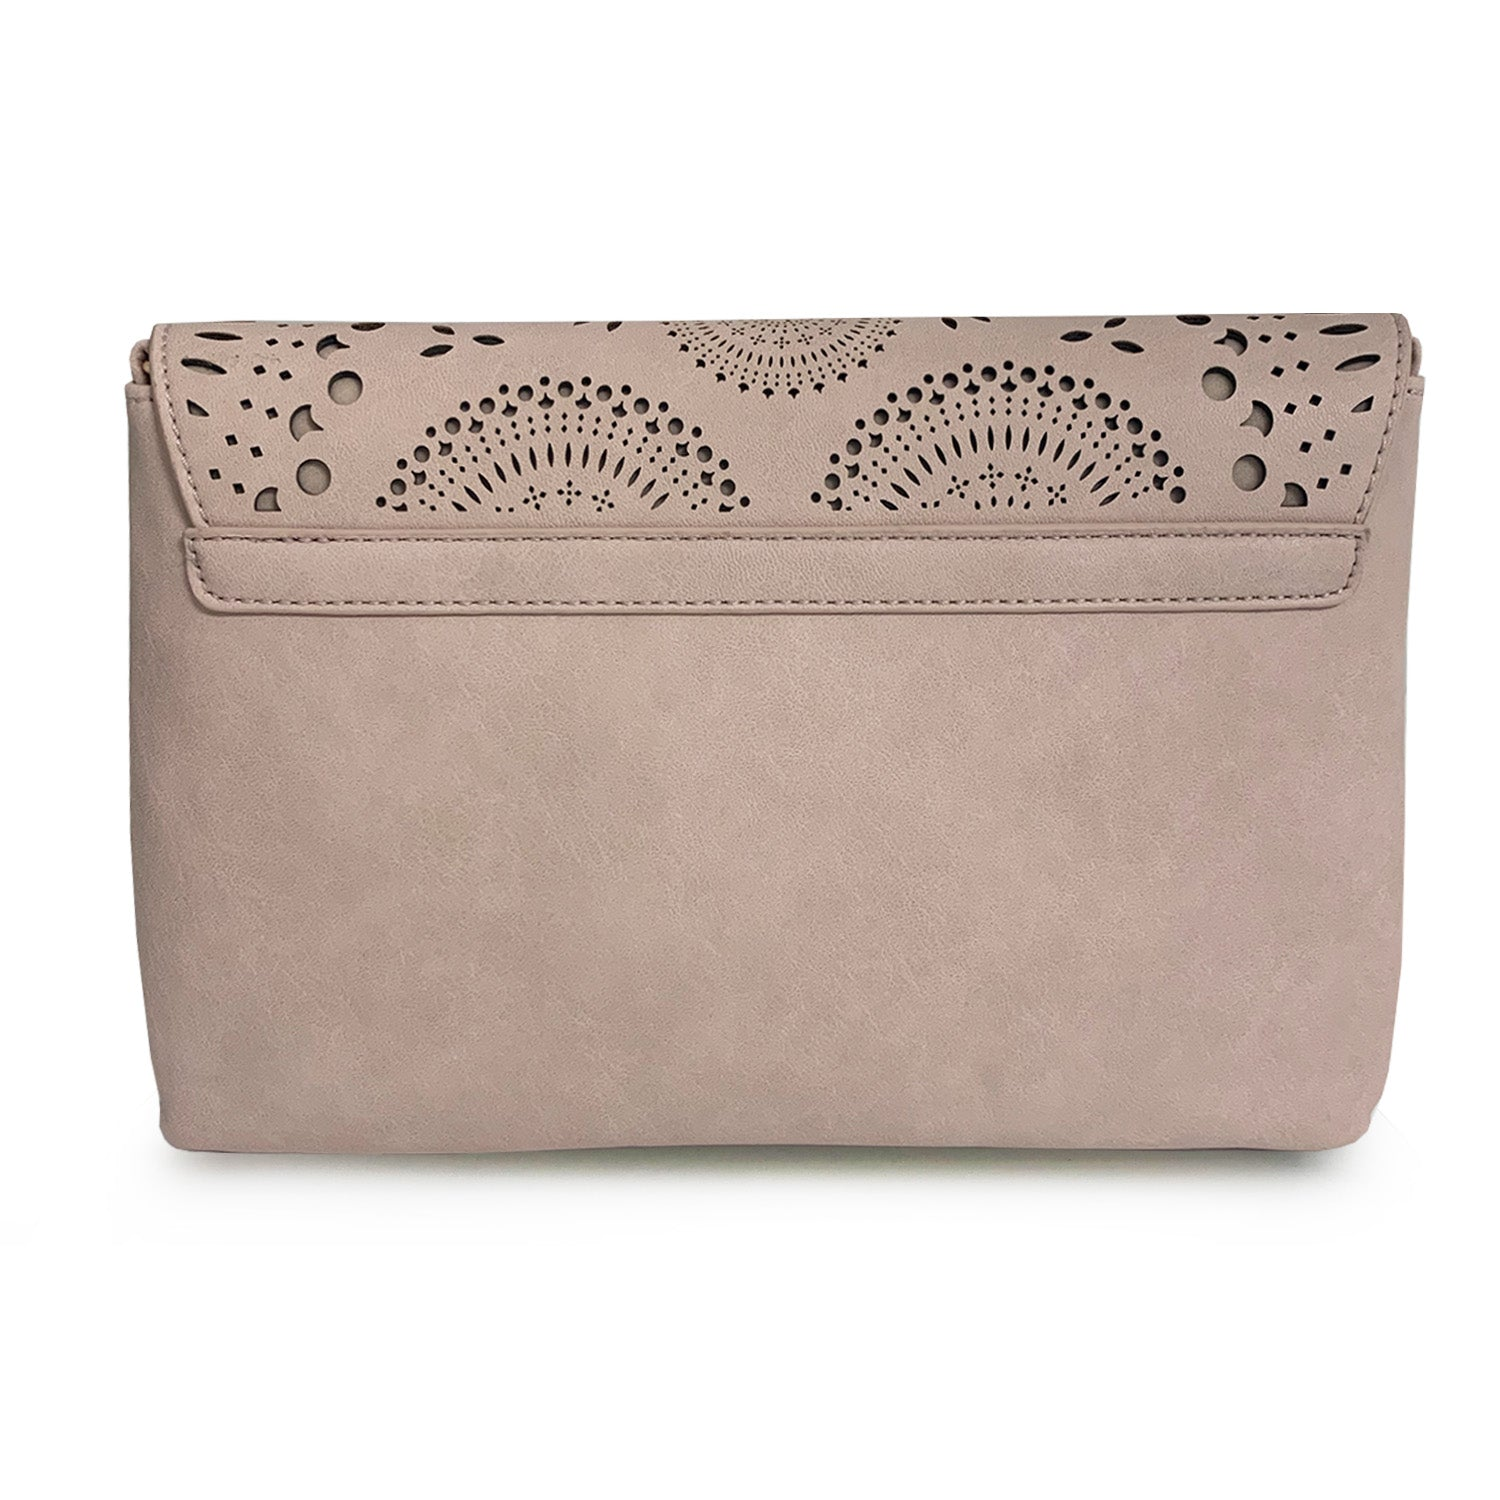 Scalloped Flap Perforated Clutch